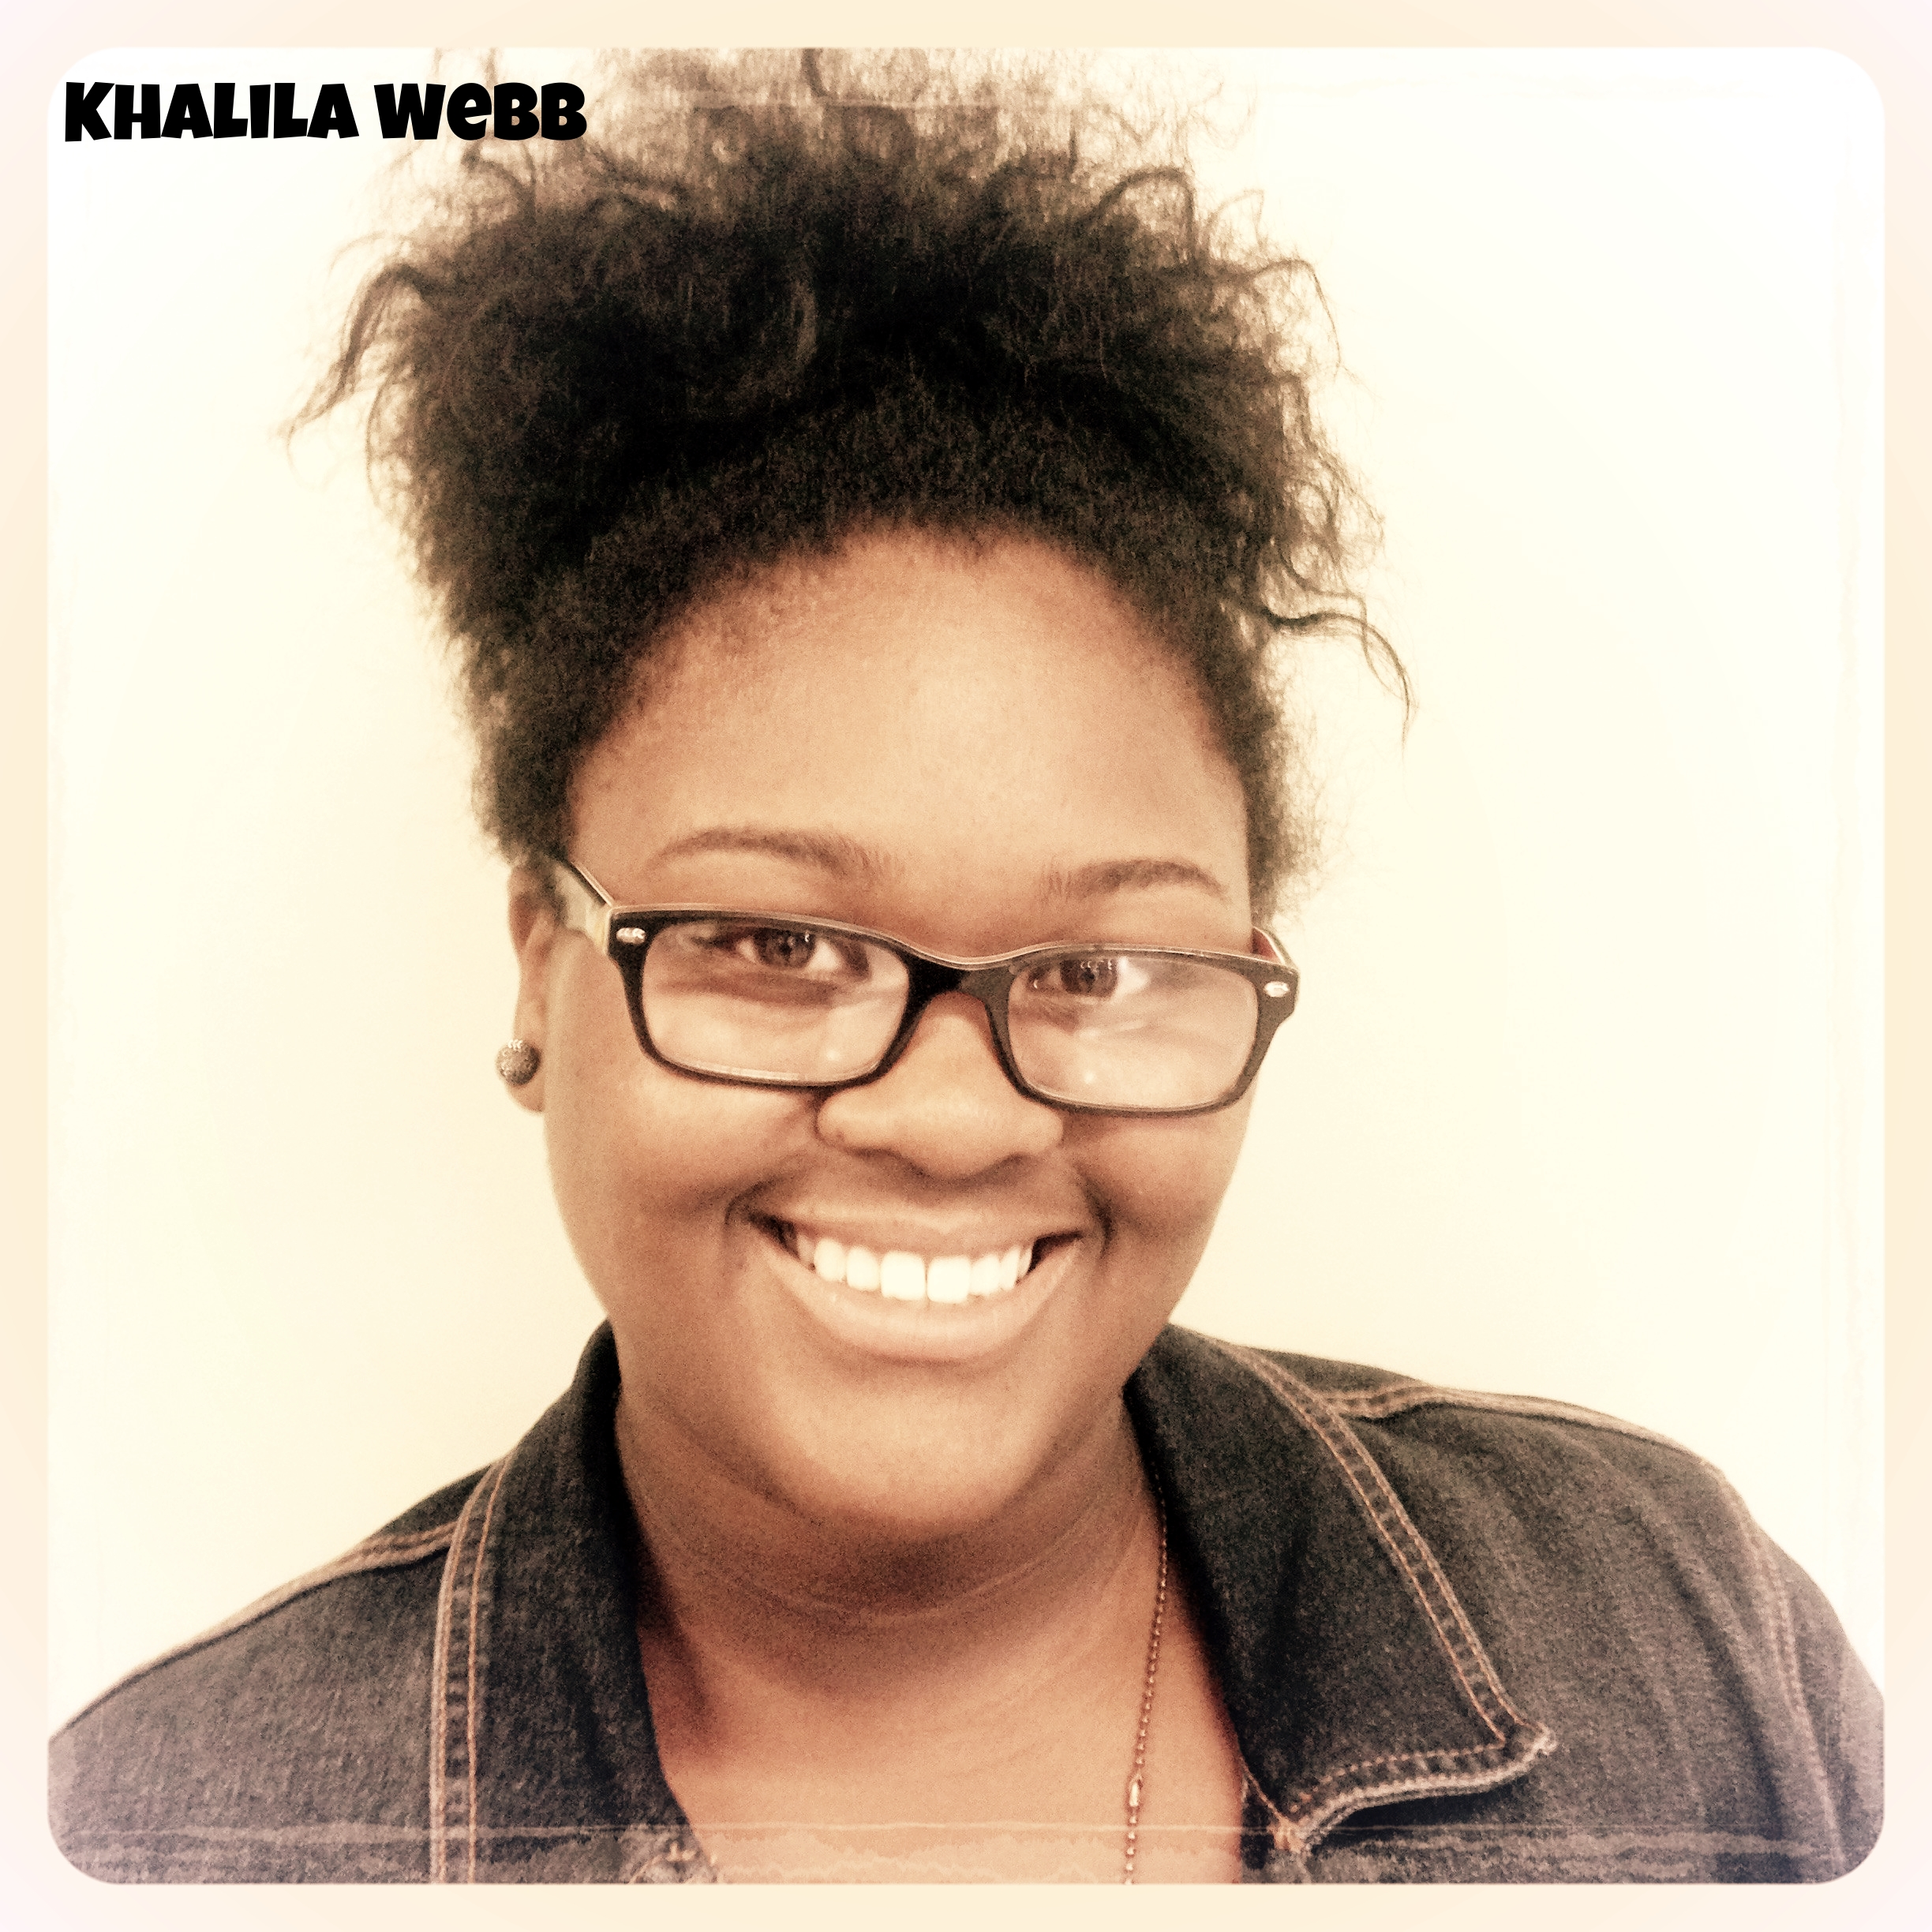 My name is  Khalila Webb . I am in the 11th grade and I attend McClymonds High School. I Love food and I love sports. My goal is to be an Attorney, if I don't make the WNBA. My favorite sport is basketball, my favorite team is OKC, and my favorite football team is the San Francisco 49ers. I am a risky person, which means I will most likely try anything. My favorite animal is a Cheetah. My favorite color is purple because it means royalty and it's a fun and mindful color.